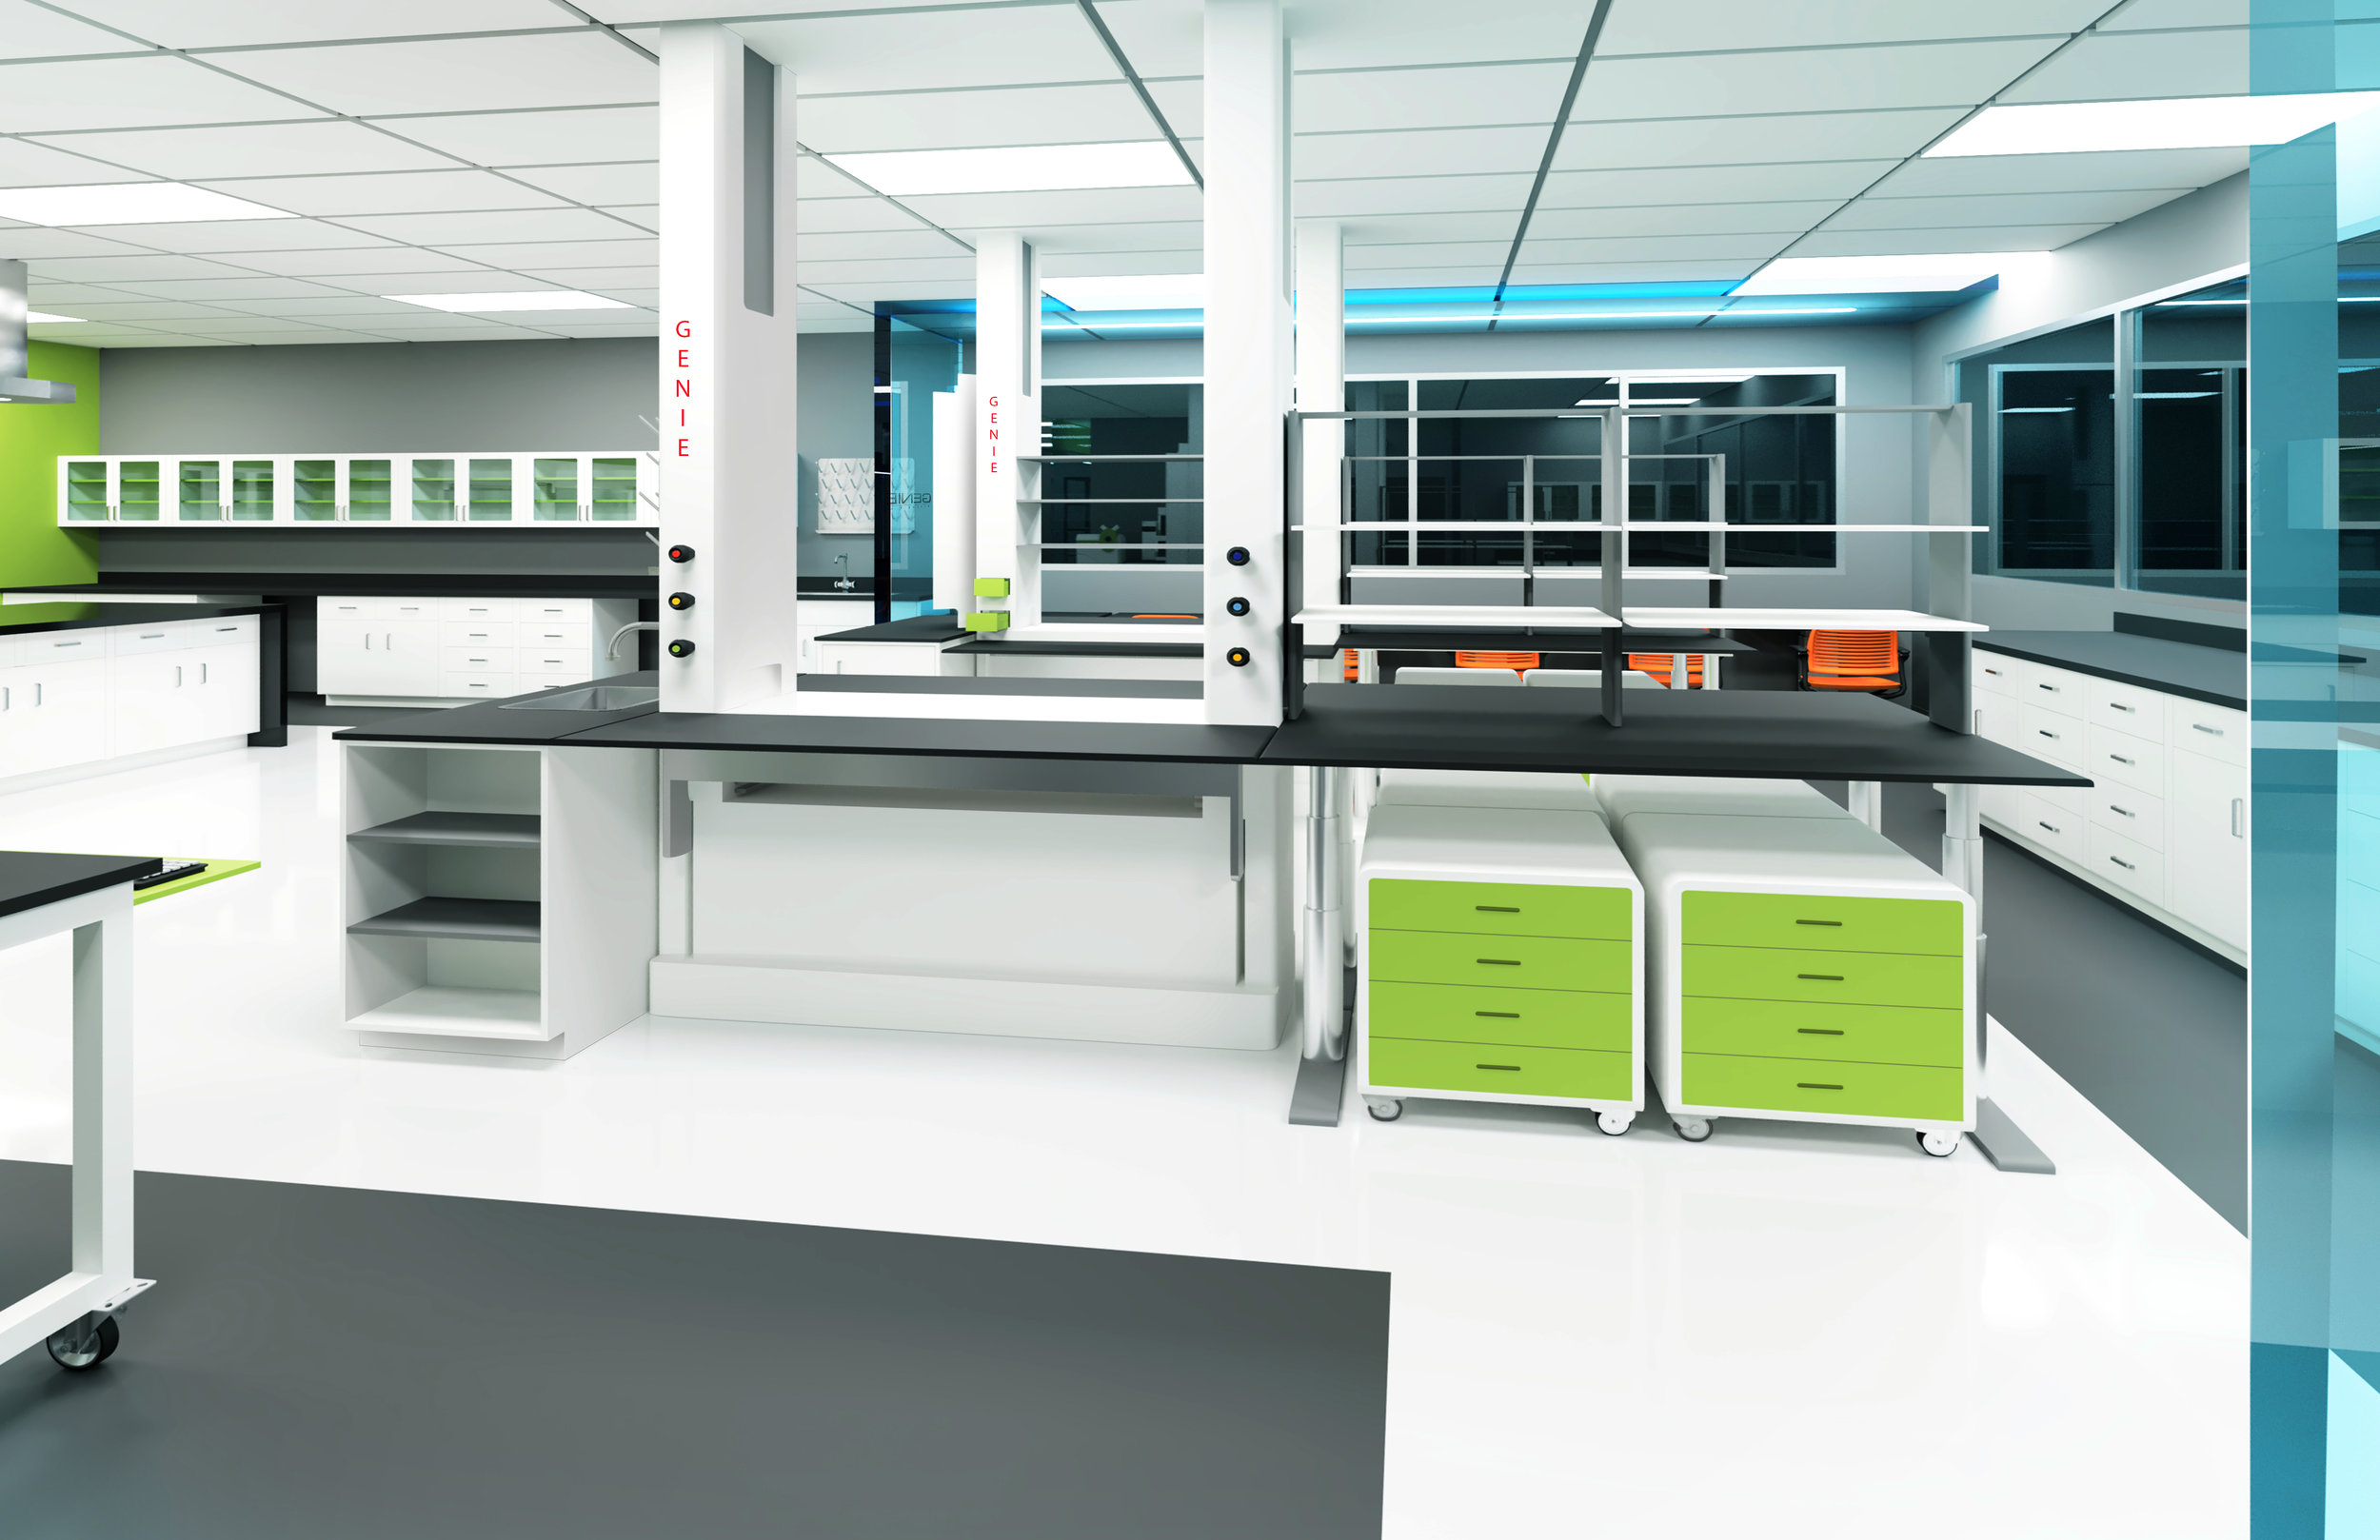 Lab Extraction Rendering 4 17x11.jpg